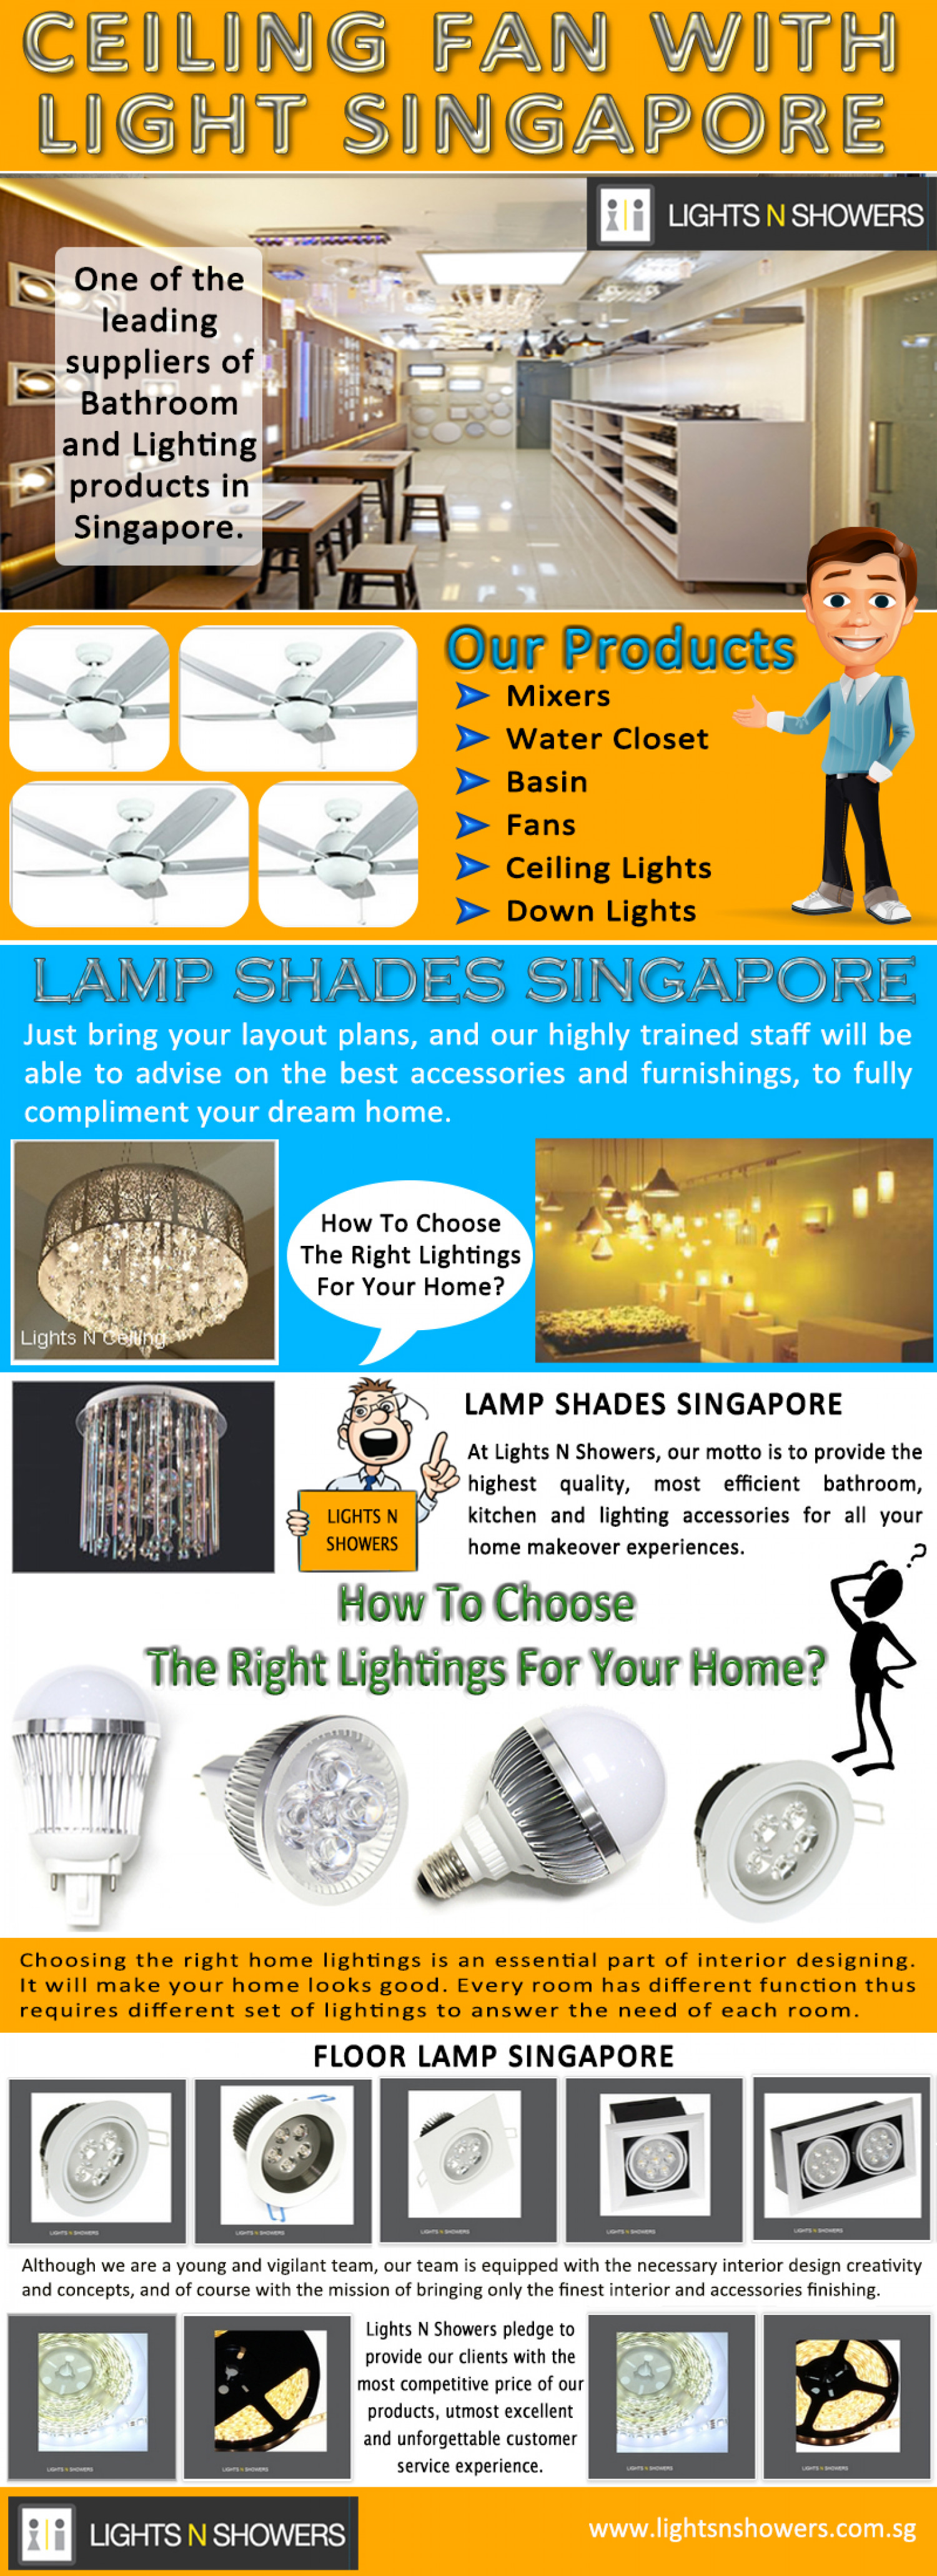 Ceiling Fan With Light Singapore Infographic